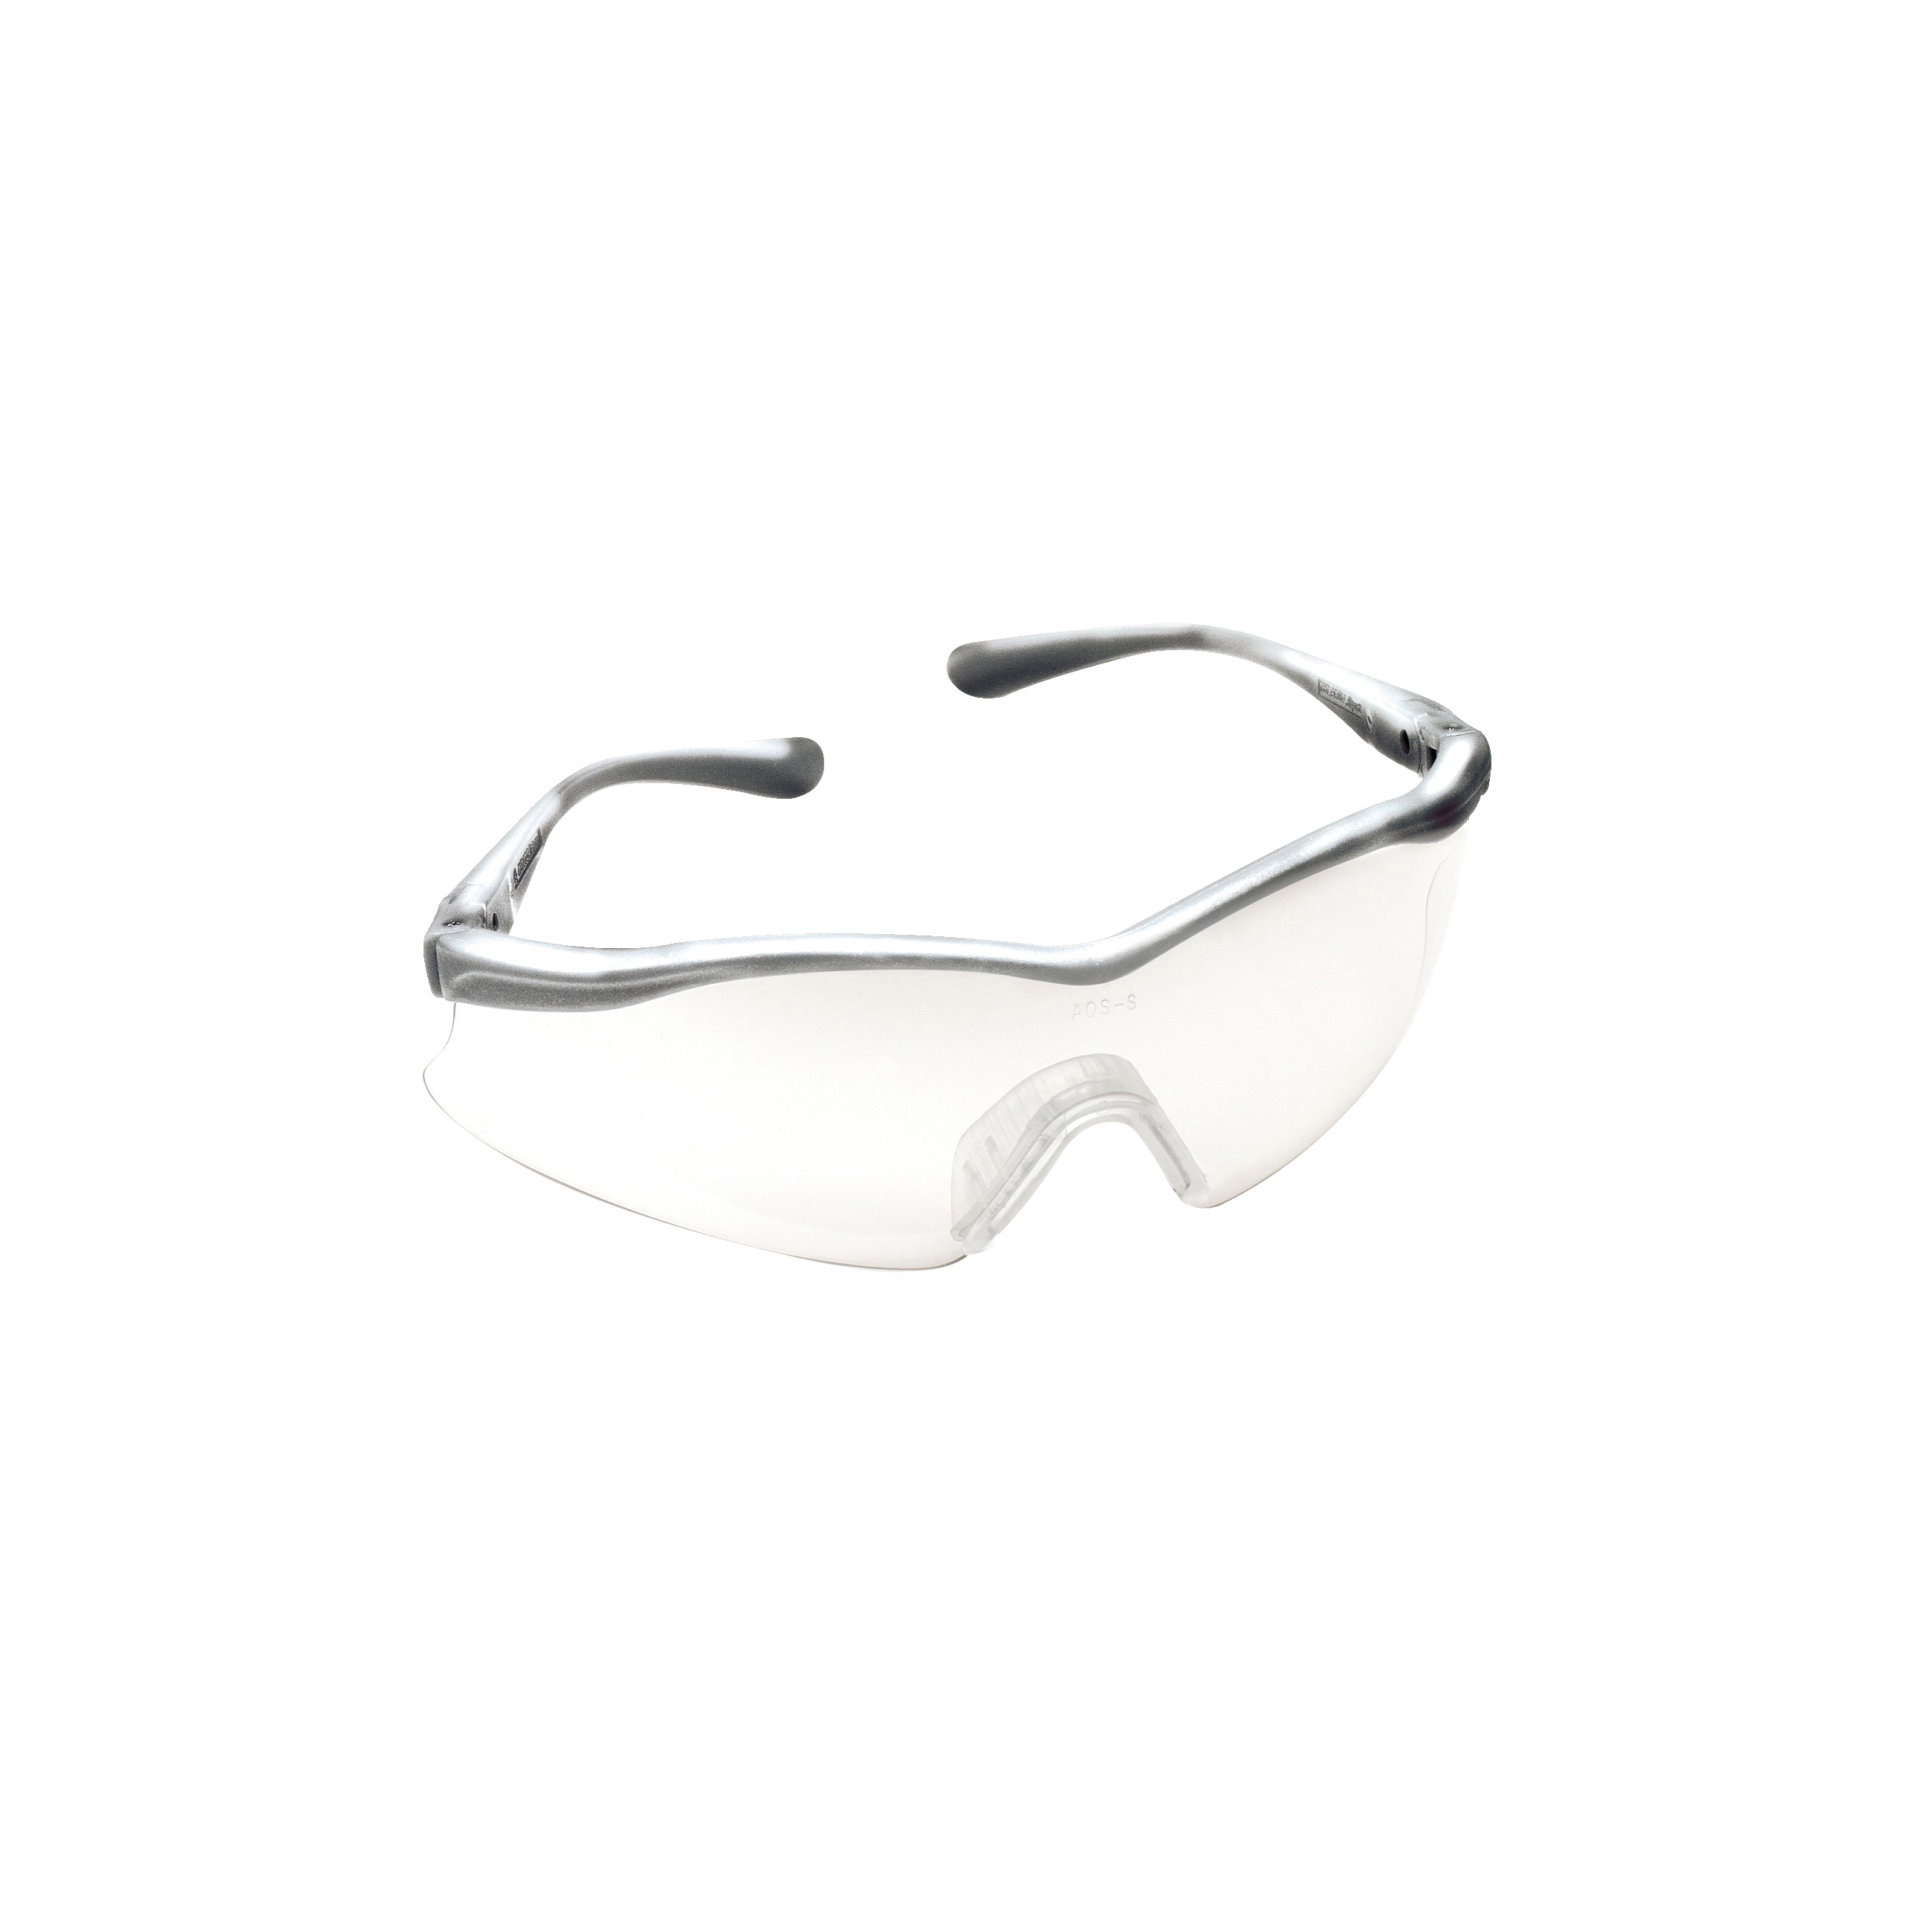 3M™ X.Sport™ 078371-62386 15182-00000-20 Lightweight Safety Glasses, Anti-Fog Clear Lens, Half Framed Silver Plastic Frame, Polycarbonate Lens, Specifications Met: ANSI Z87.1-2015, CSA Z94.3